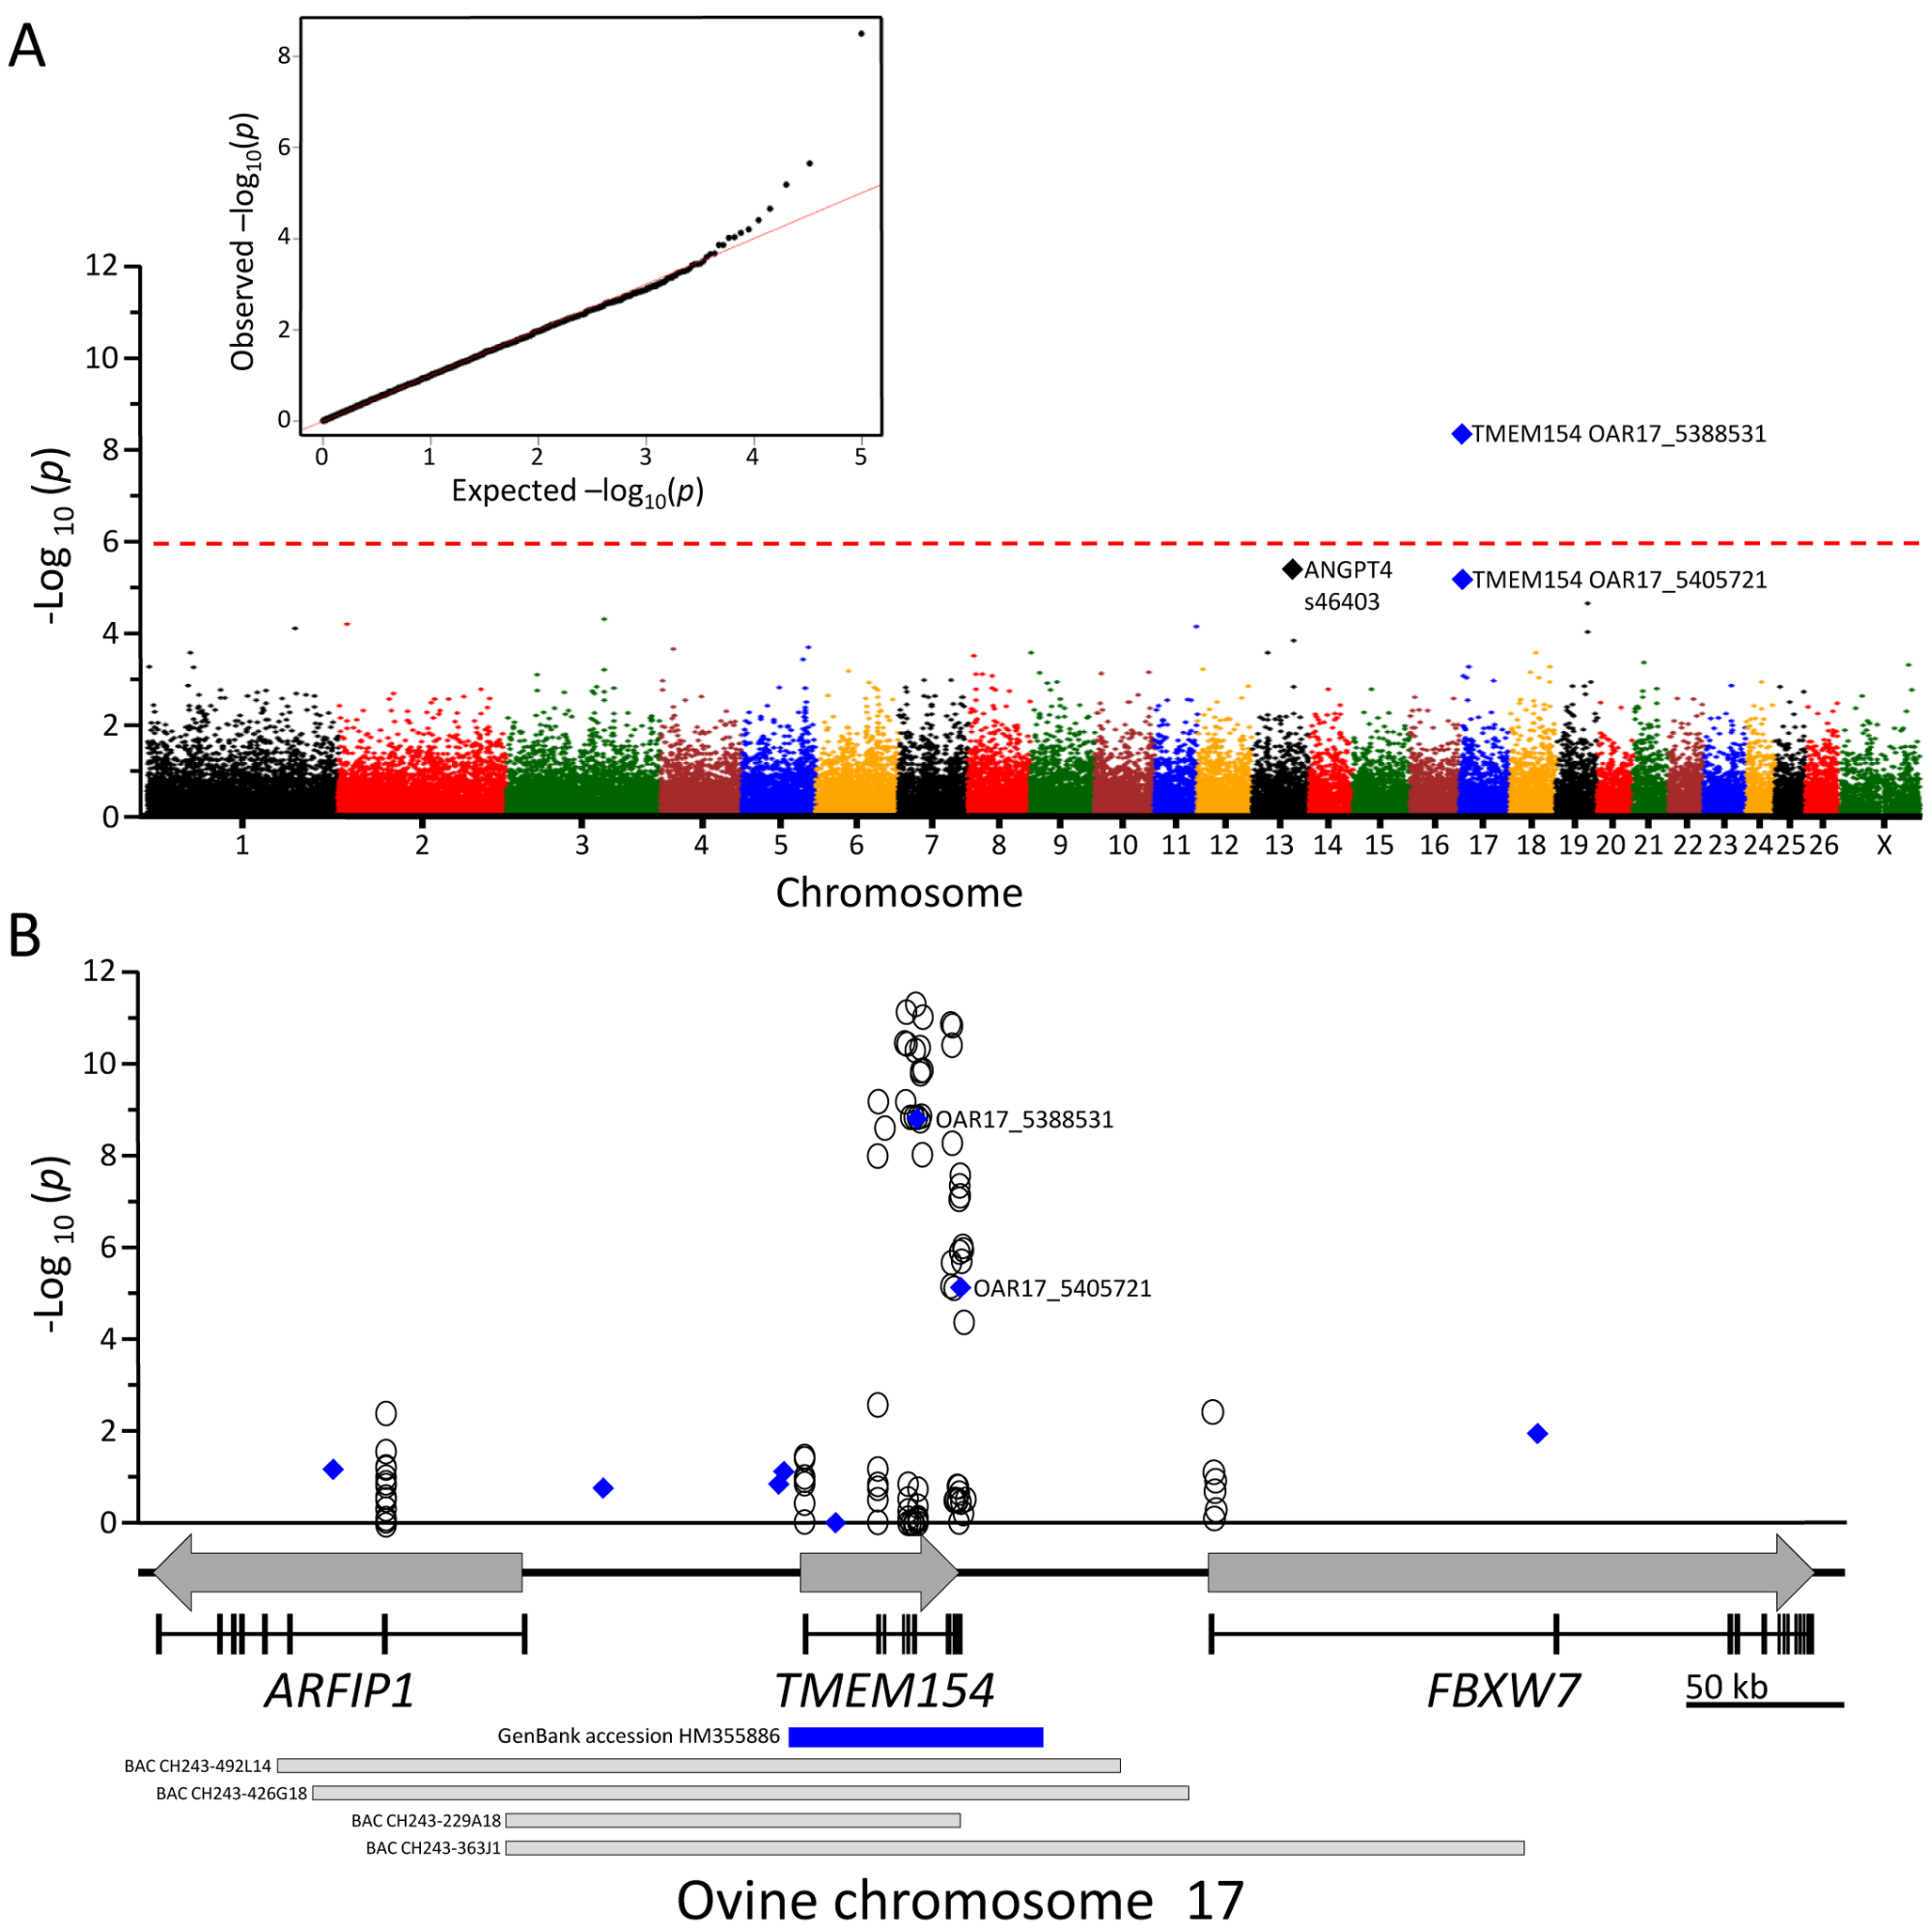 GWAS and fine-mapping of <i>TMEM154</i>.